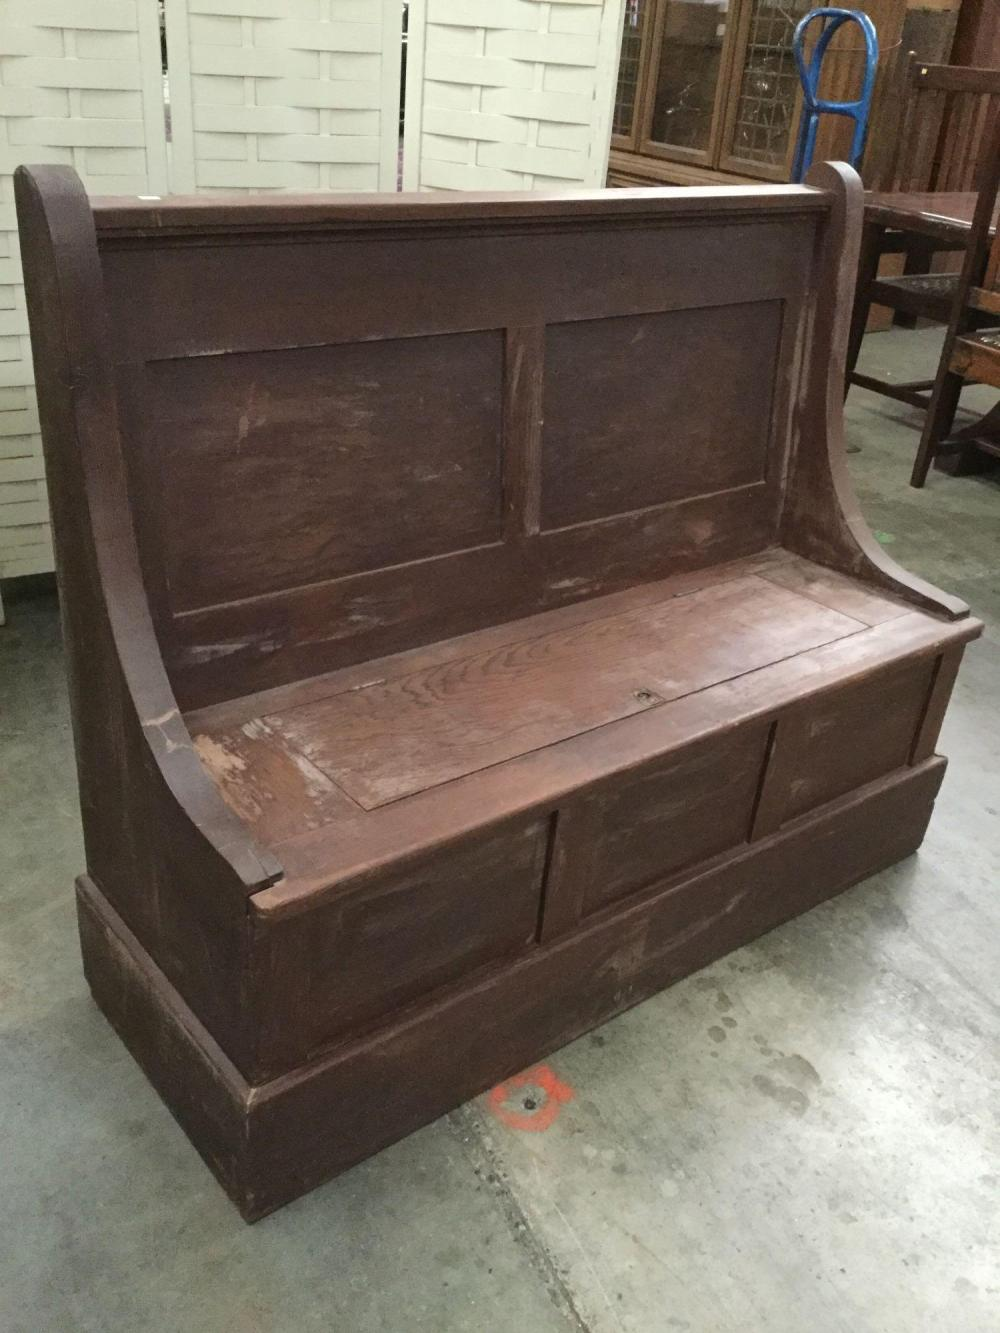 Pleasant Antique Church Style Wooden Pew Bench With Storage Seat Caraccident5 Cool Chair Designs And Ideas Caraccident5Info